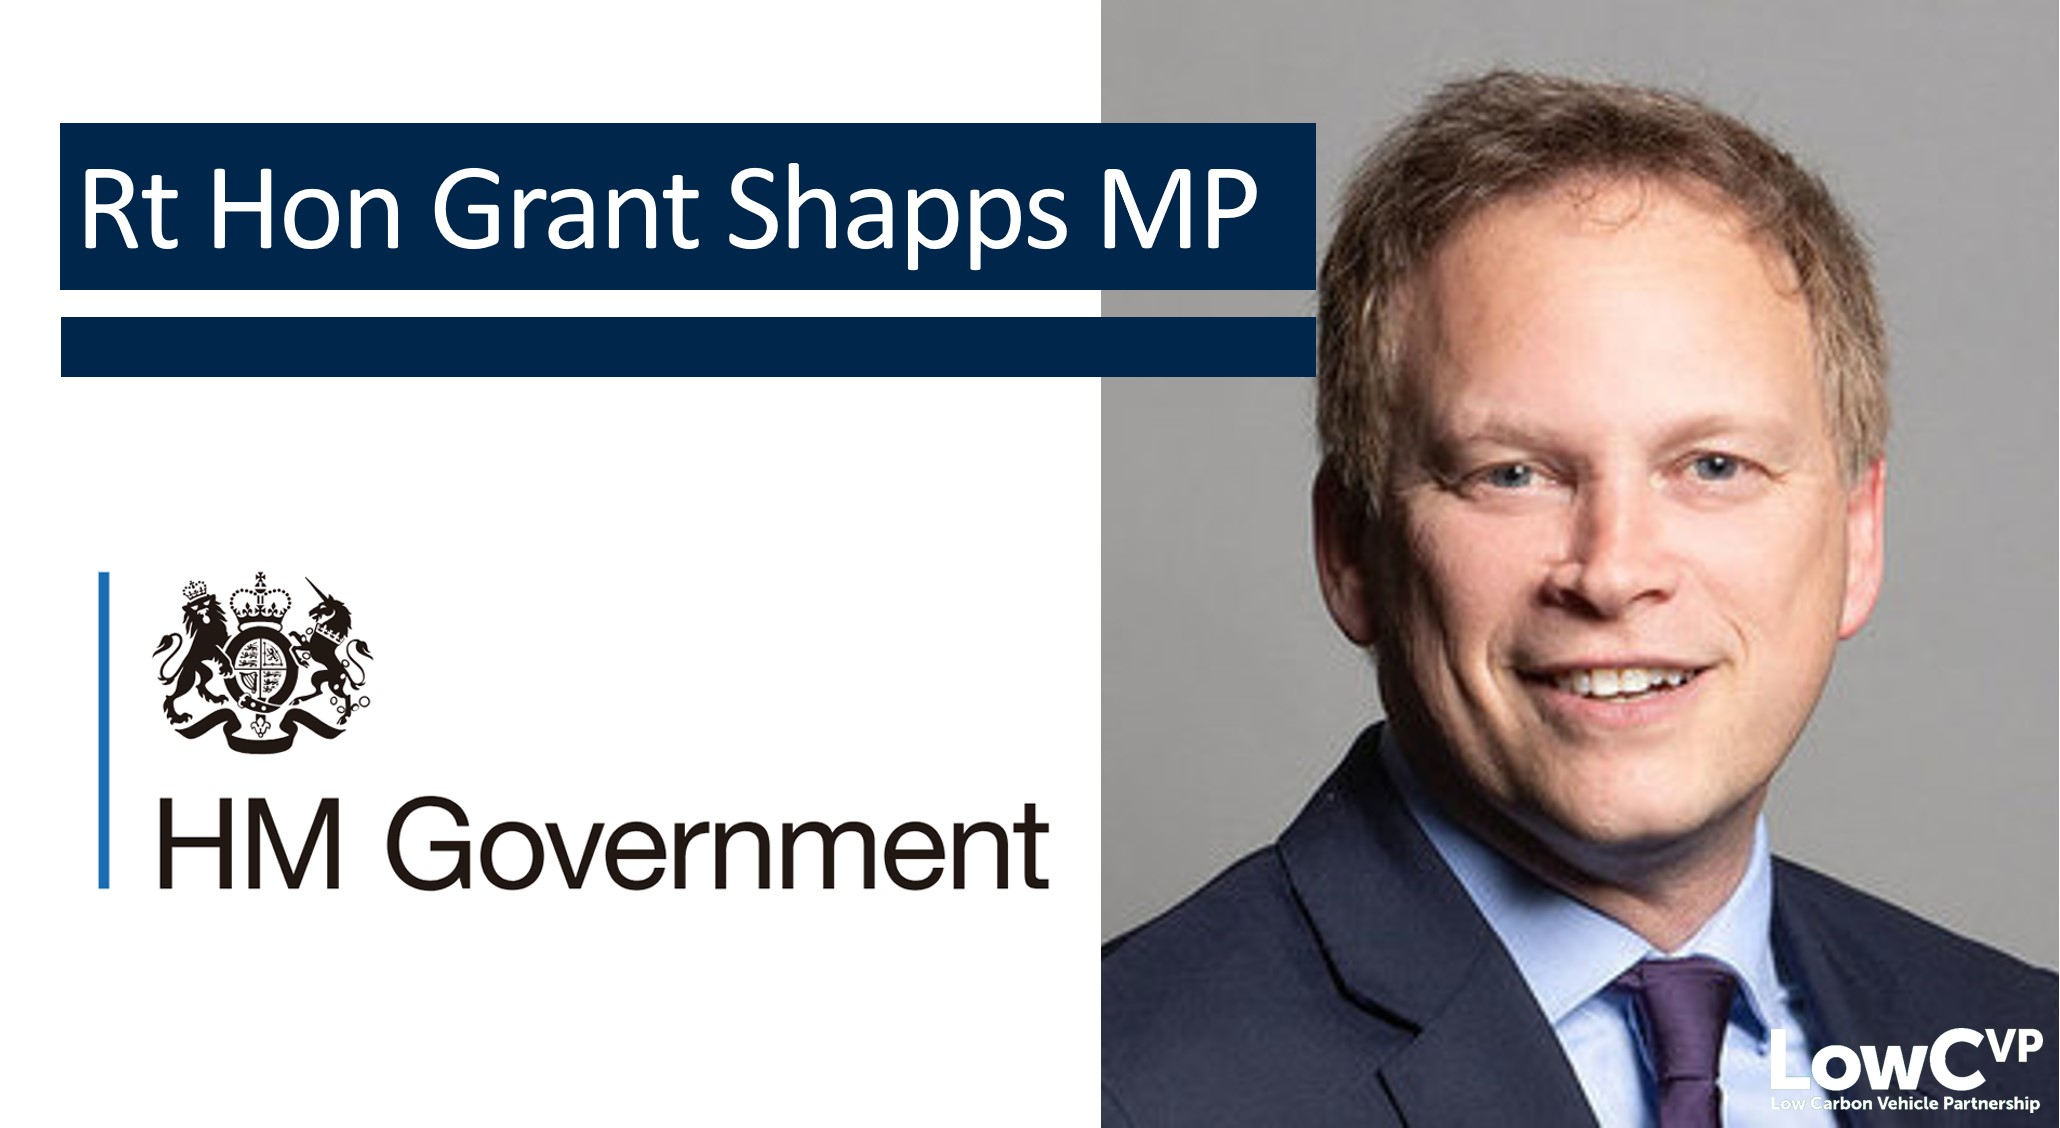 Rt Hon. Grant Shapps, MP - Secretary of State for Transport